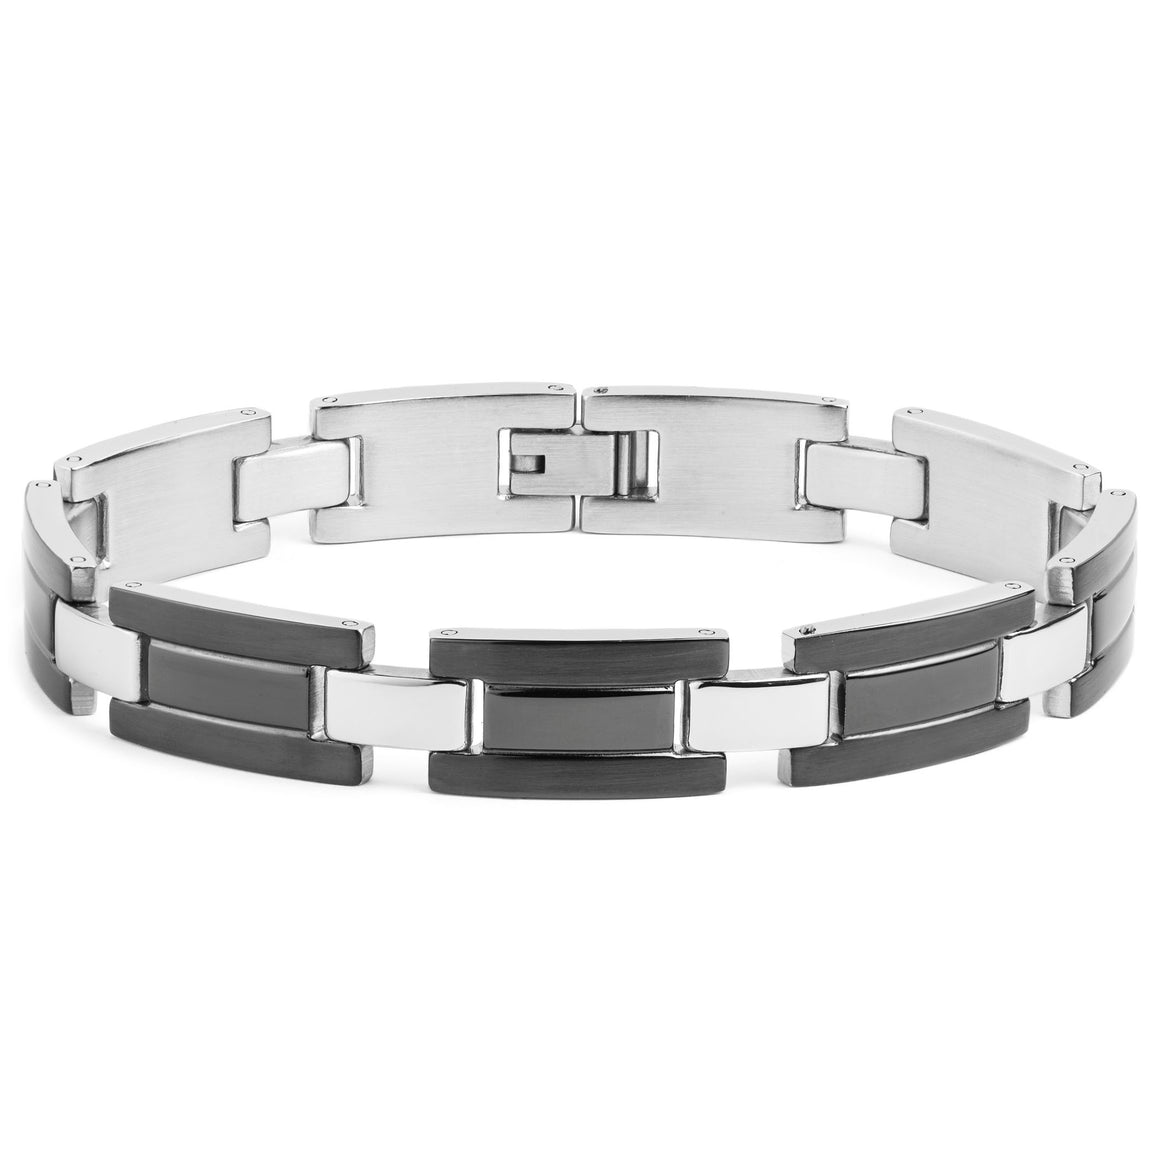 Crucible Stainless Steel Brushed and Polished Double Groove Link Bracelet (12 mm) - 8.75""